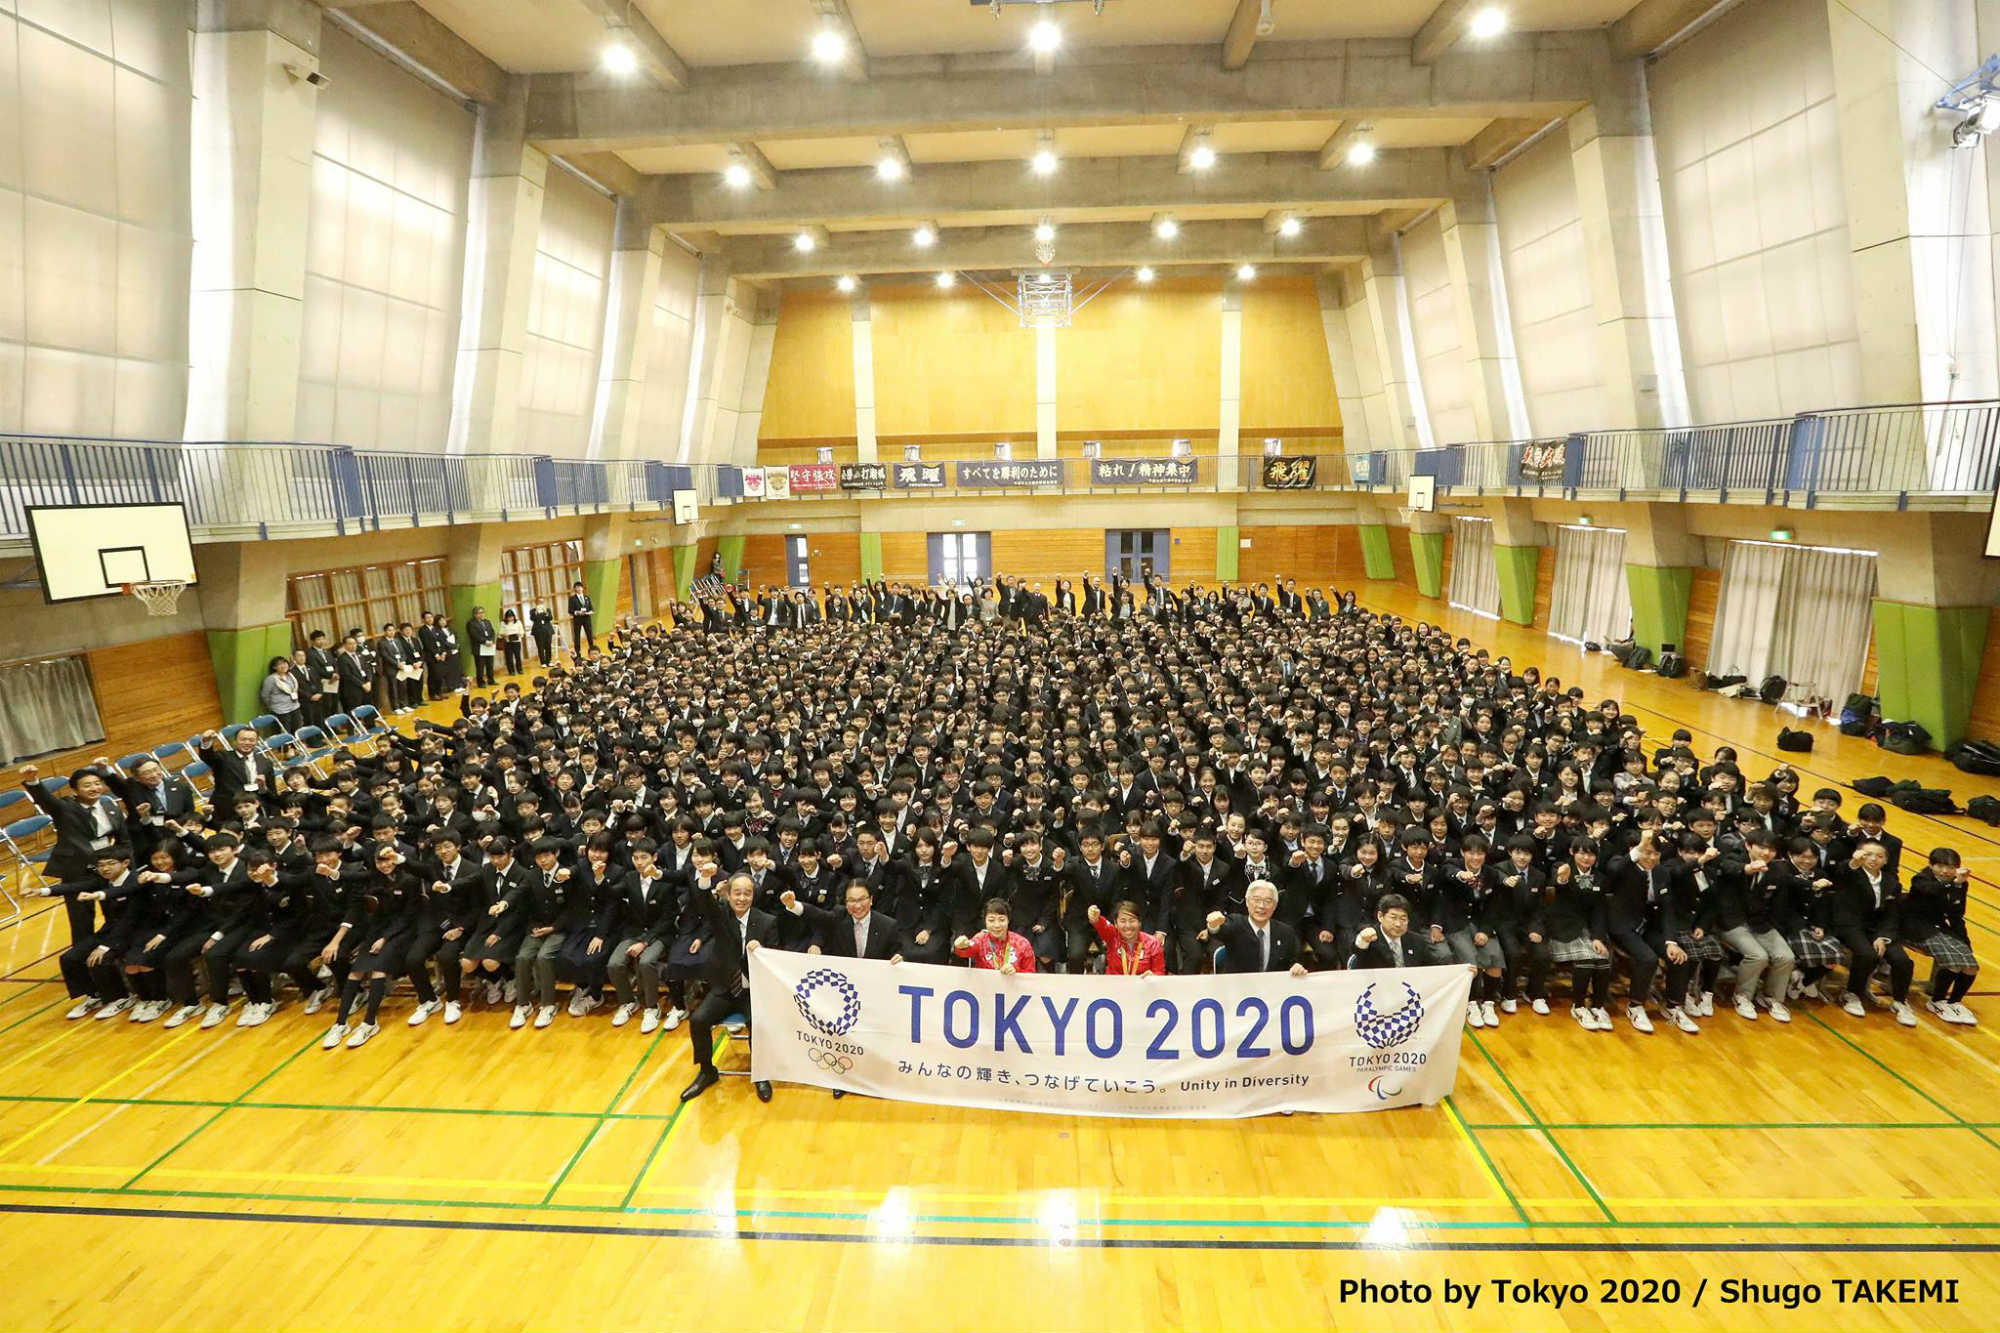 Tokyo 2020 Olympics to have 100% clean energy and recycled medal